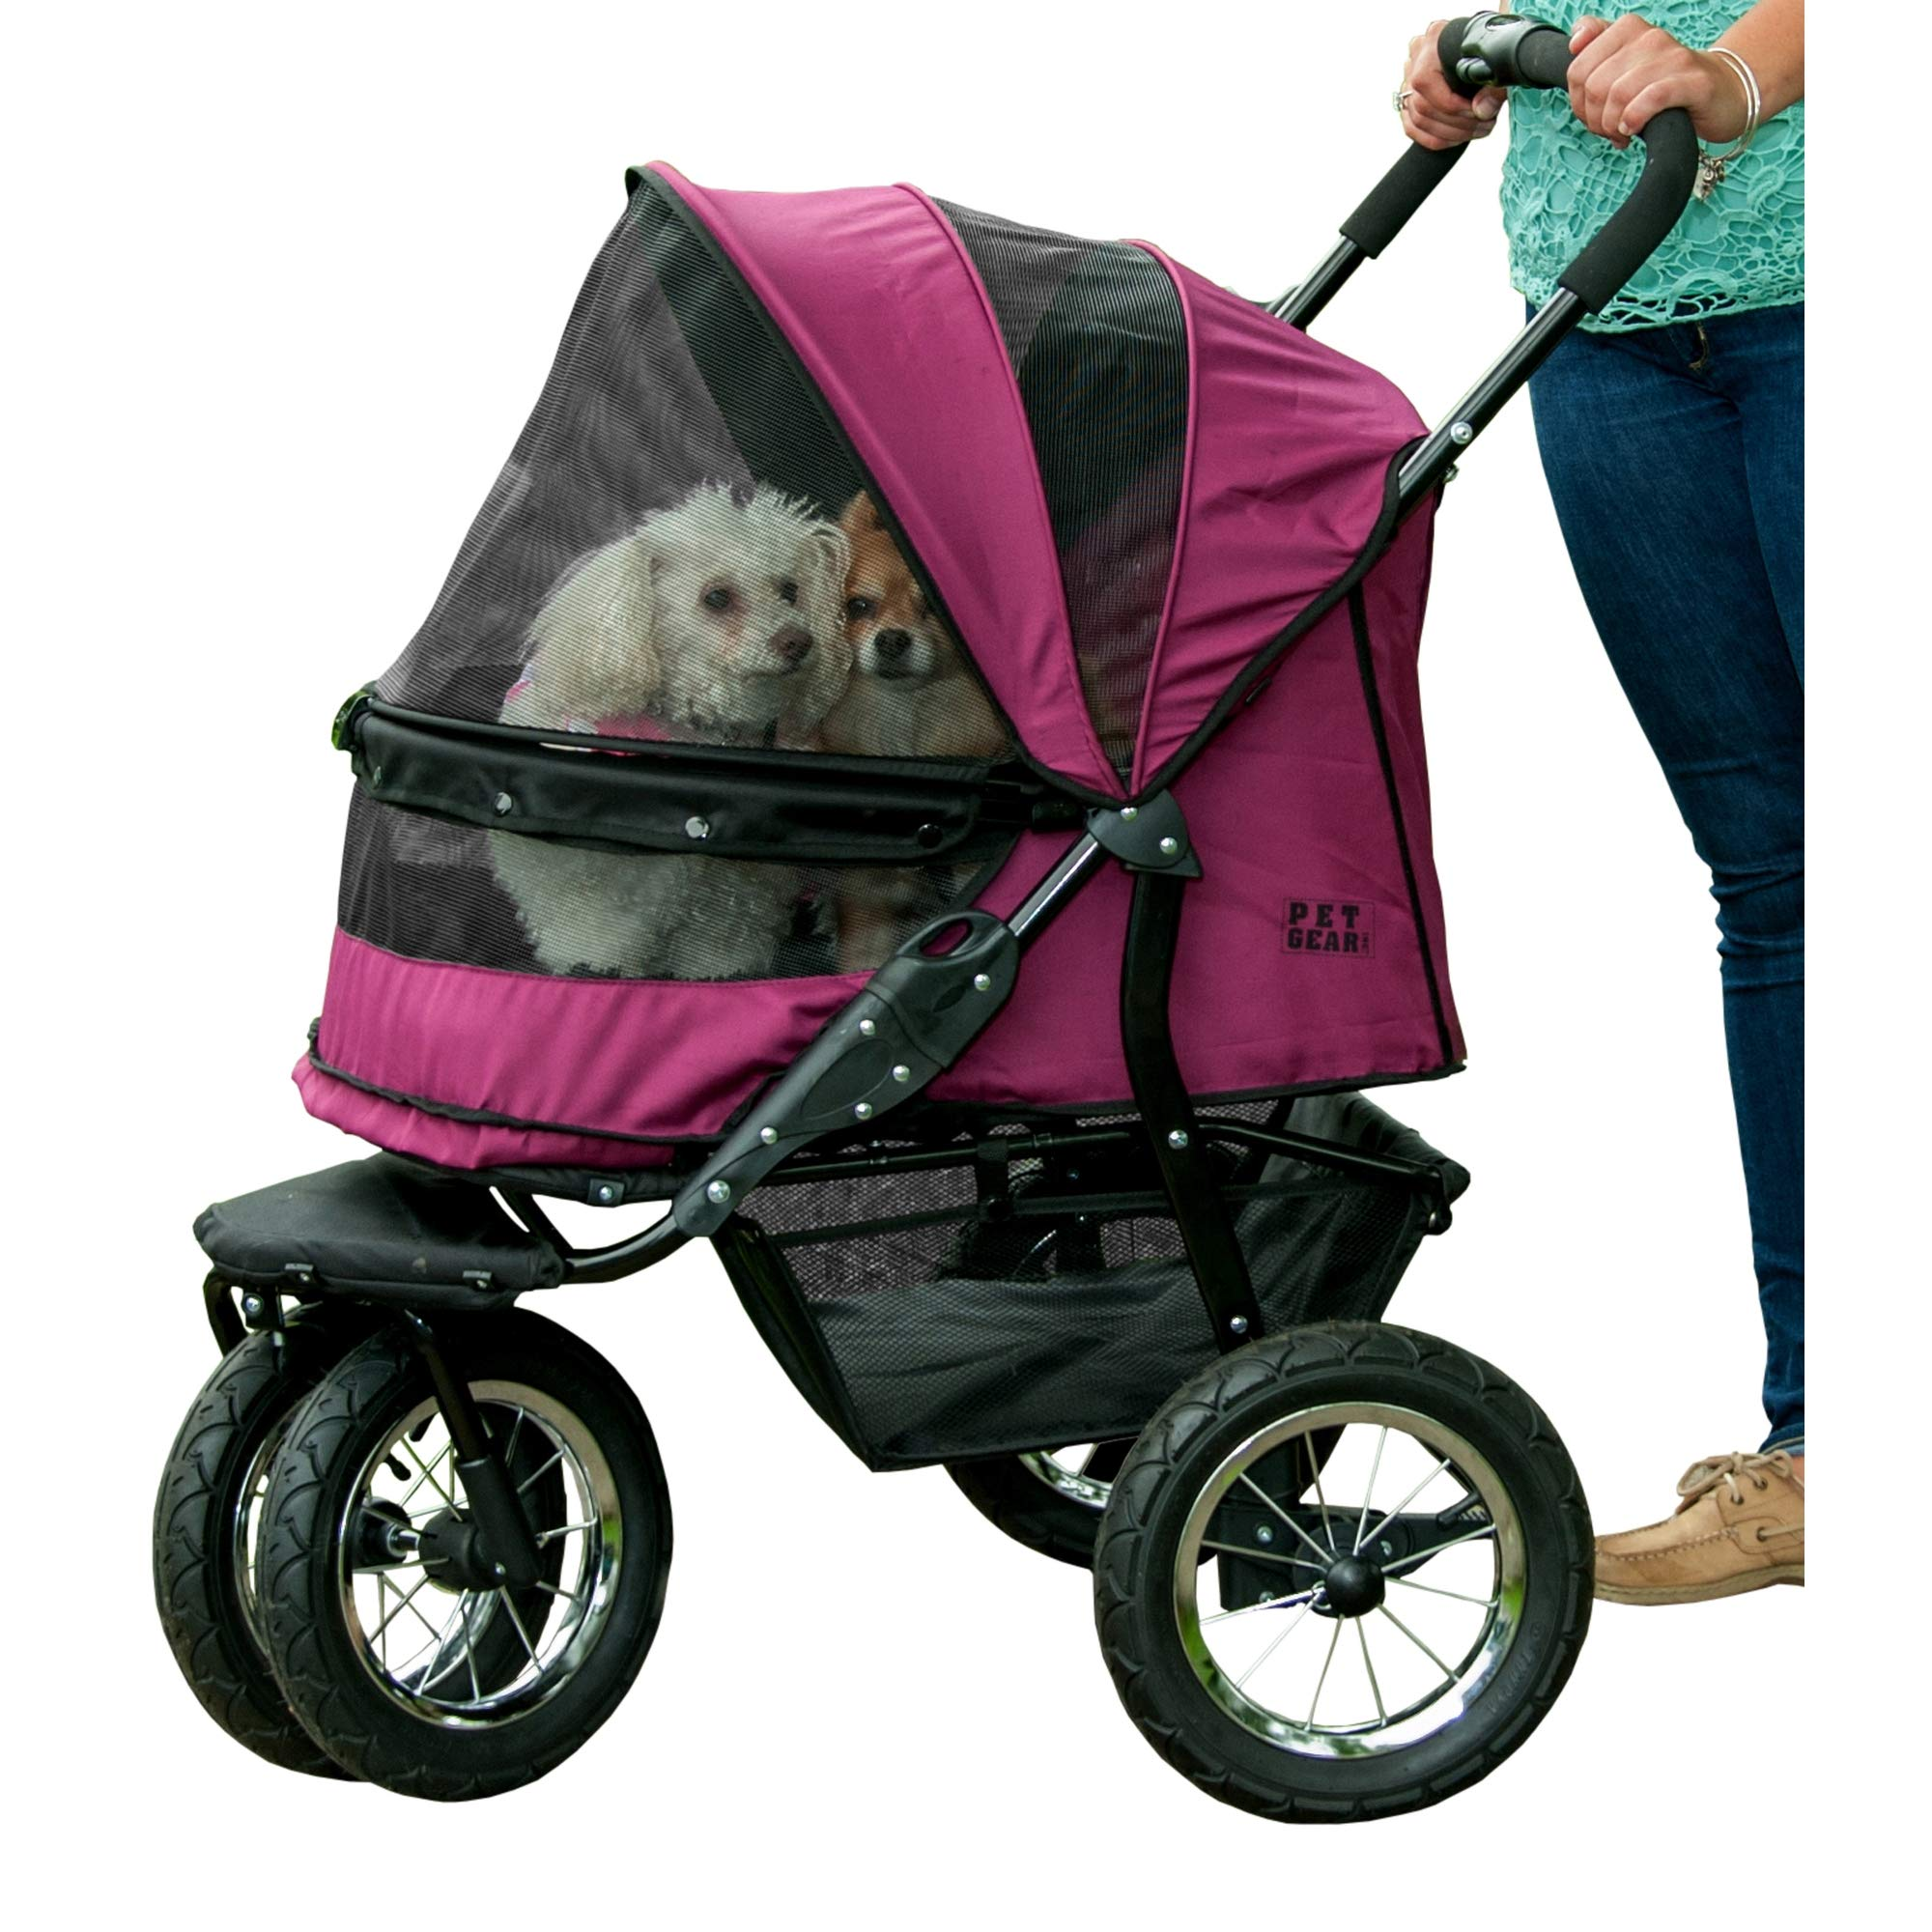 Pet Gear NO-ZIP Double Pet Stroller, Zipperless Entry, for Single or Multiple Dogs/Cats, Plush Pad + Weather Cover Included, Large Air Tires, Boysenberry by Pet Gear